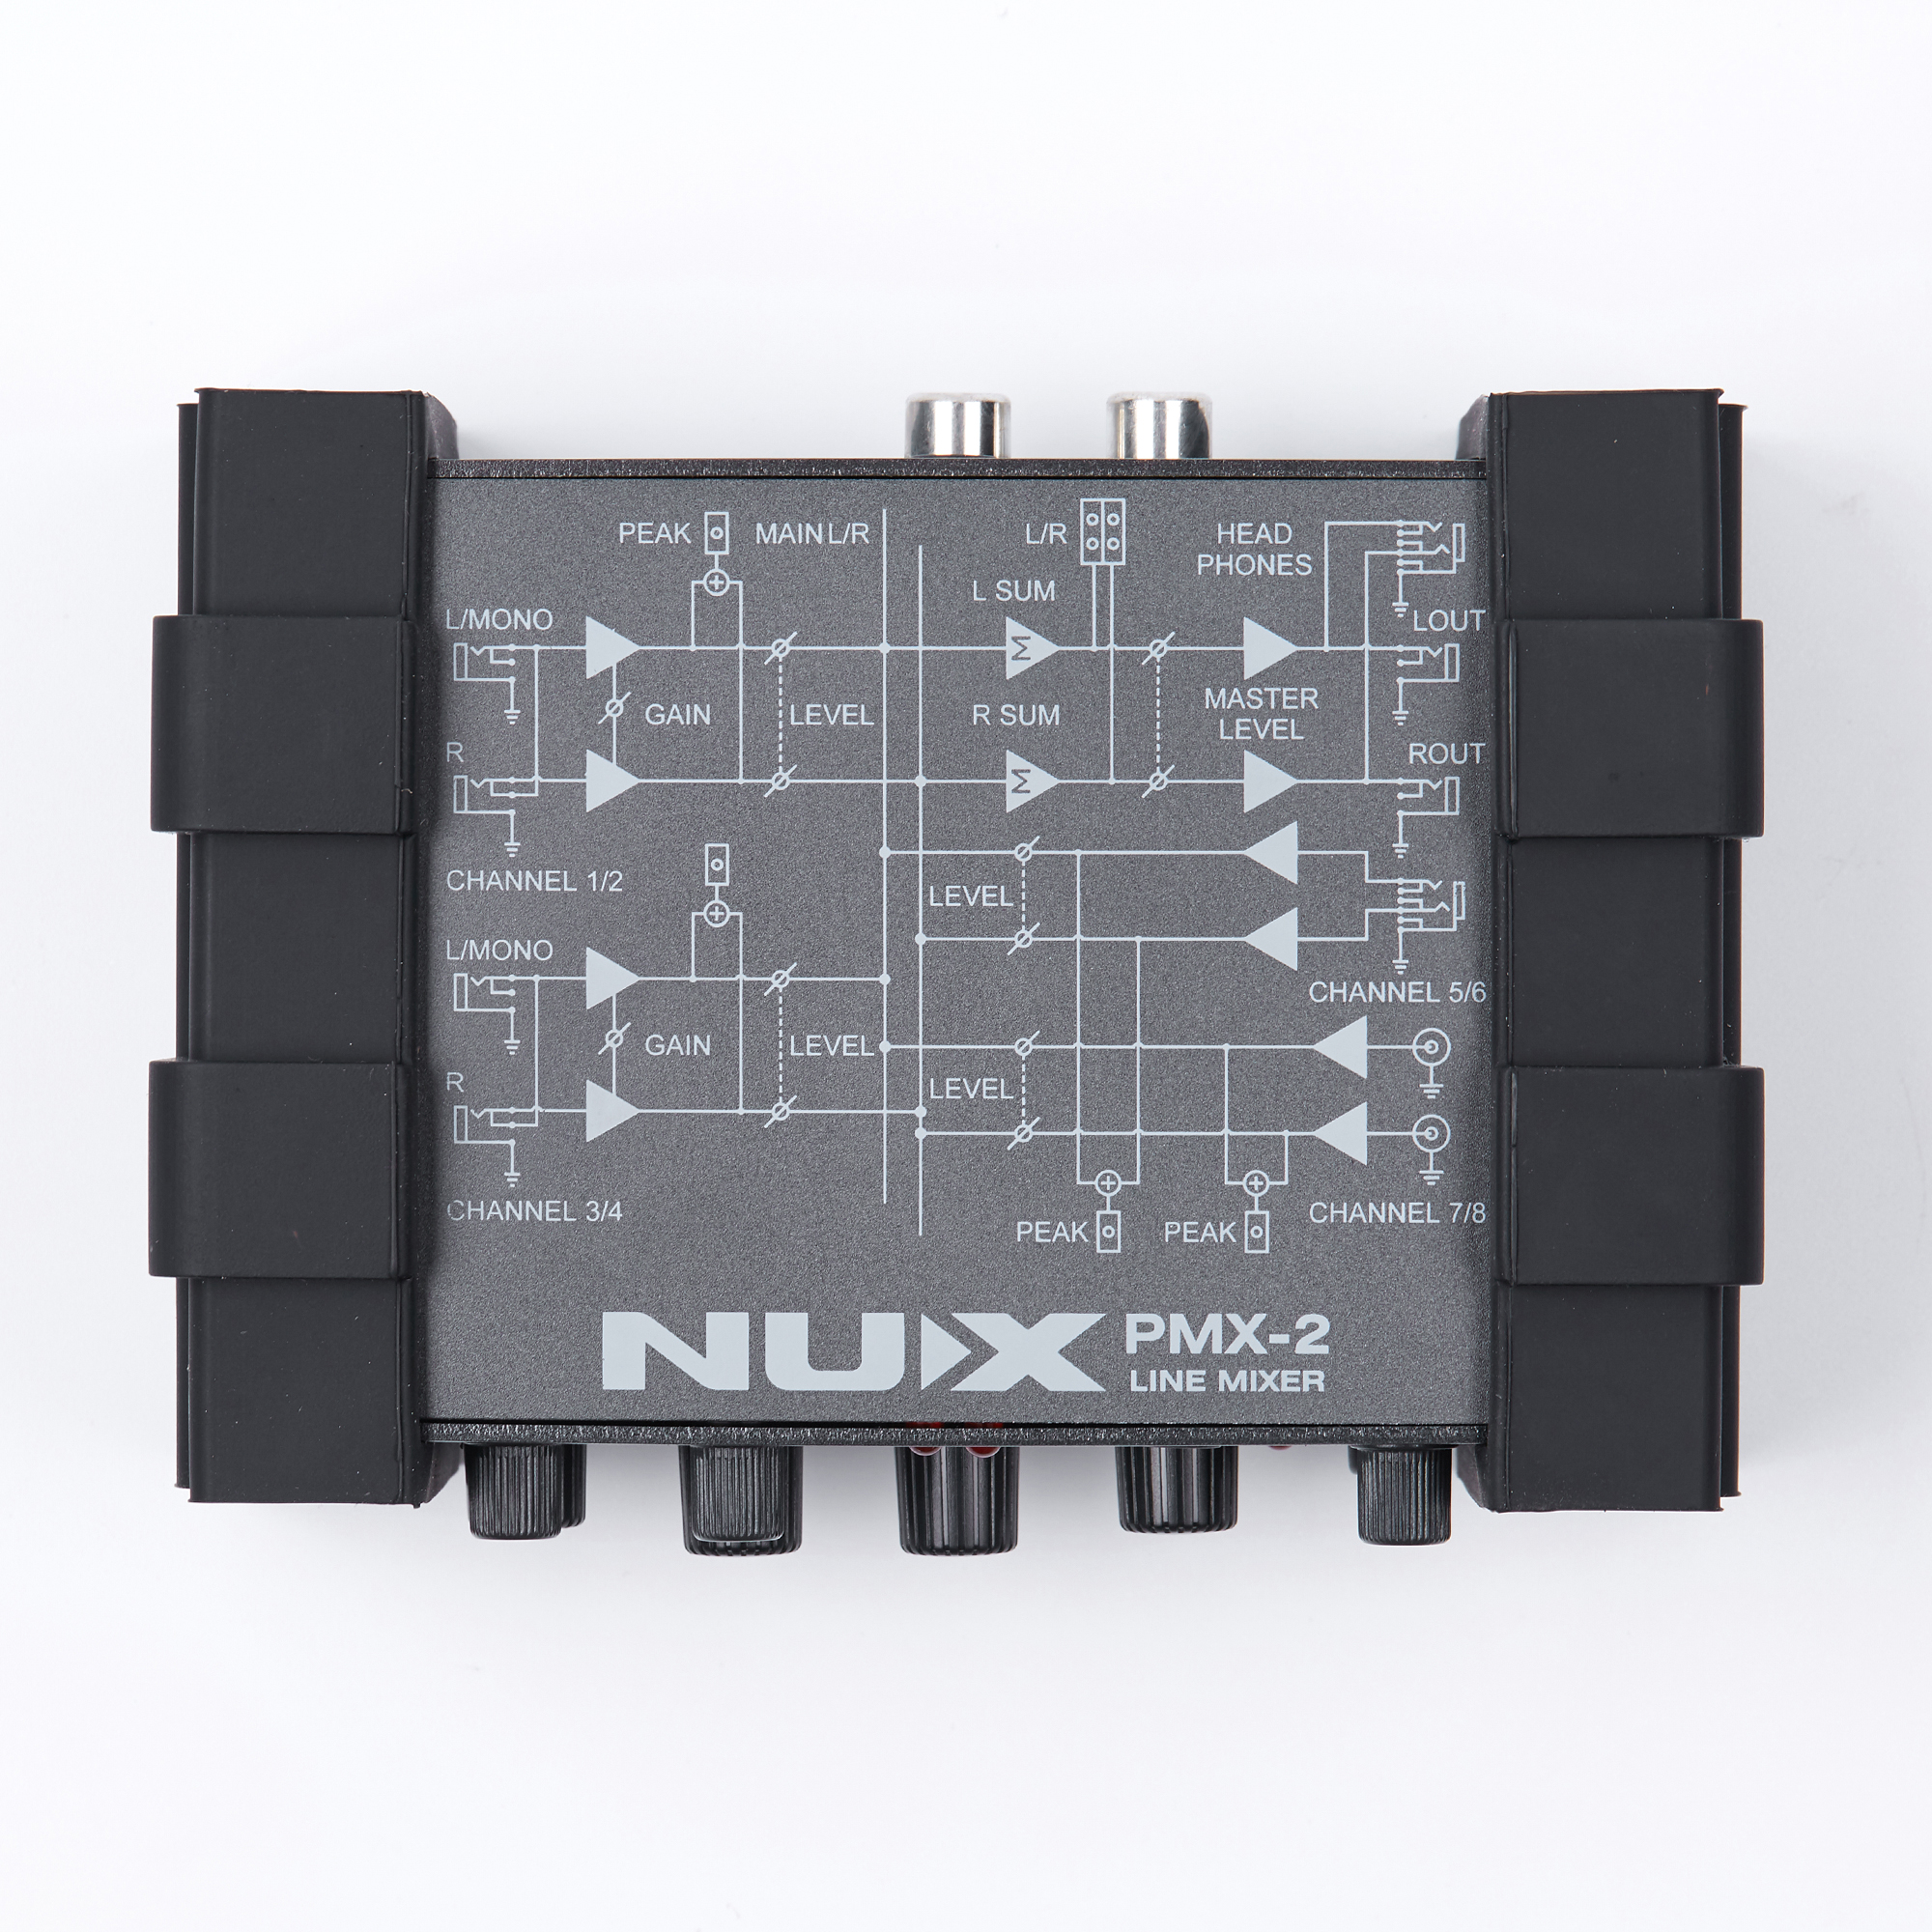 Gain Control 8 Inputs and 2 Outputs NUX PMX-2 Multi-Channel Mini Mixer 30 Musical Instruments Accessories for Guitar Bass Player raggae n vape vape a 1